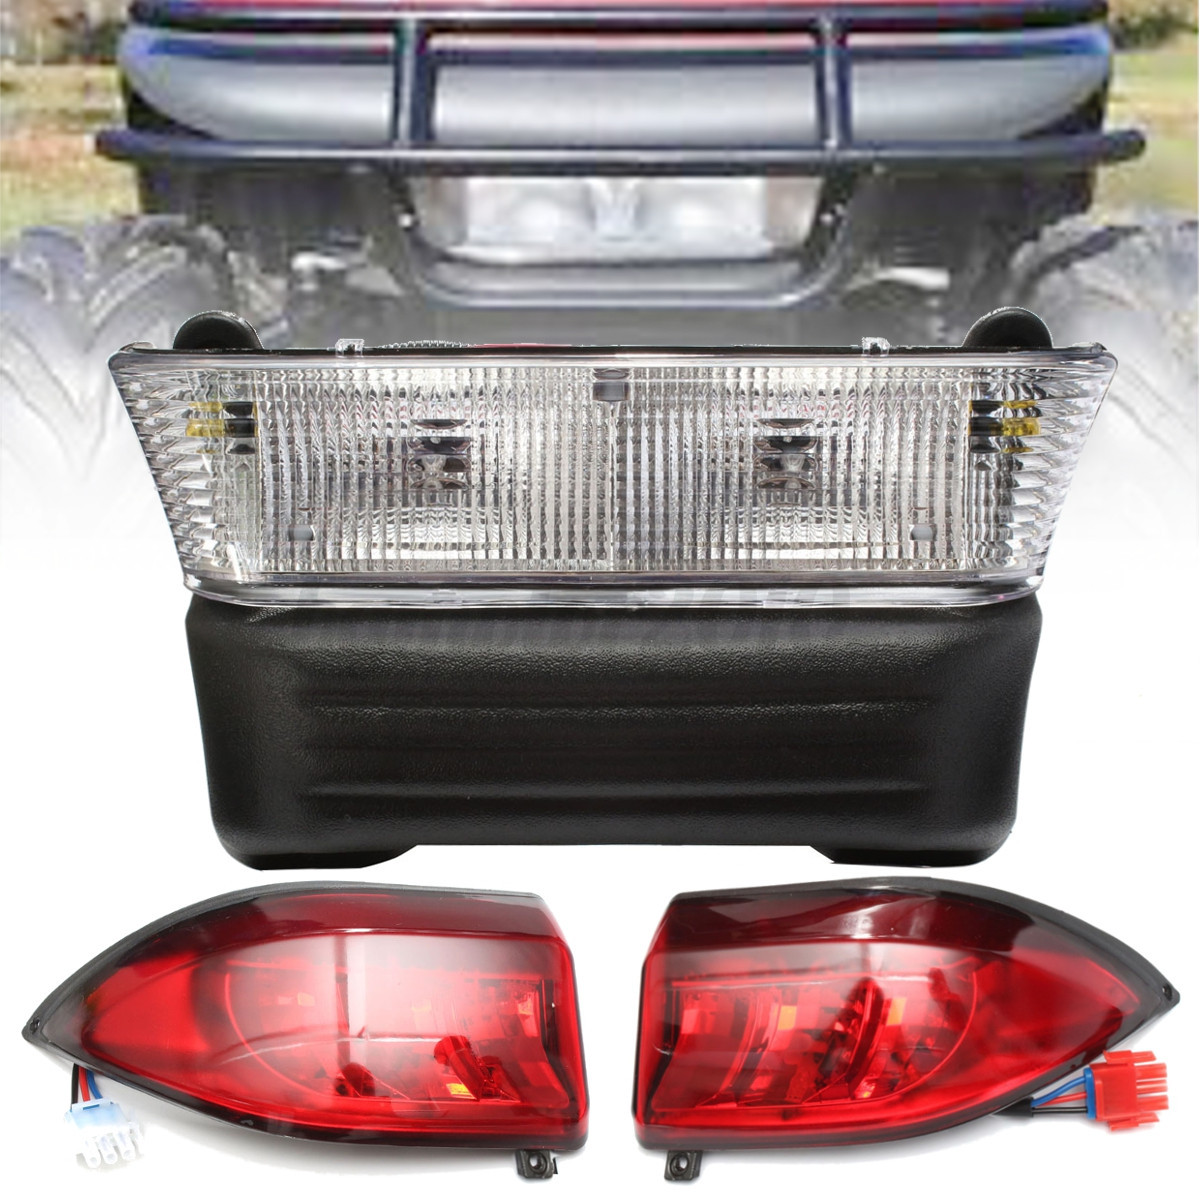 golf cart headlights wiring diagram double two way light switch halogen headlight taillight kit for club car precedent